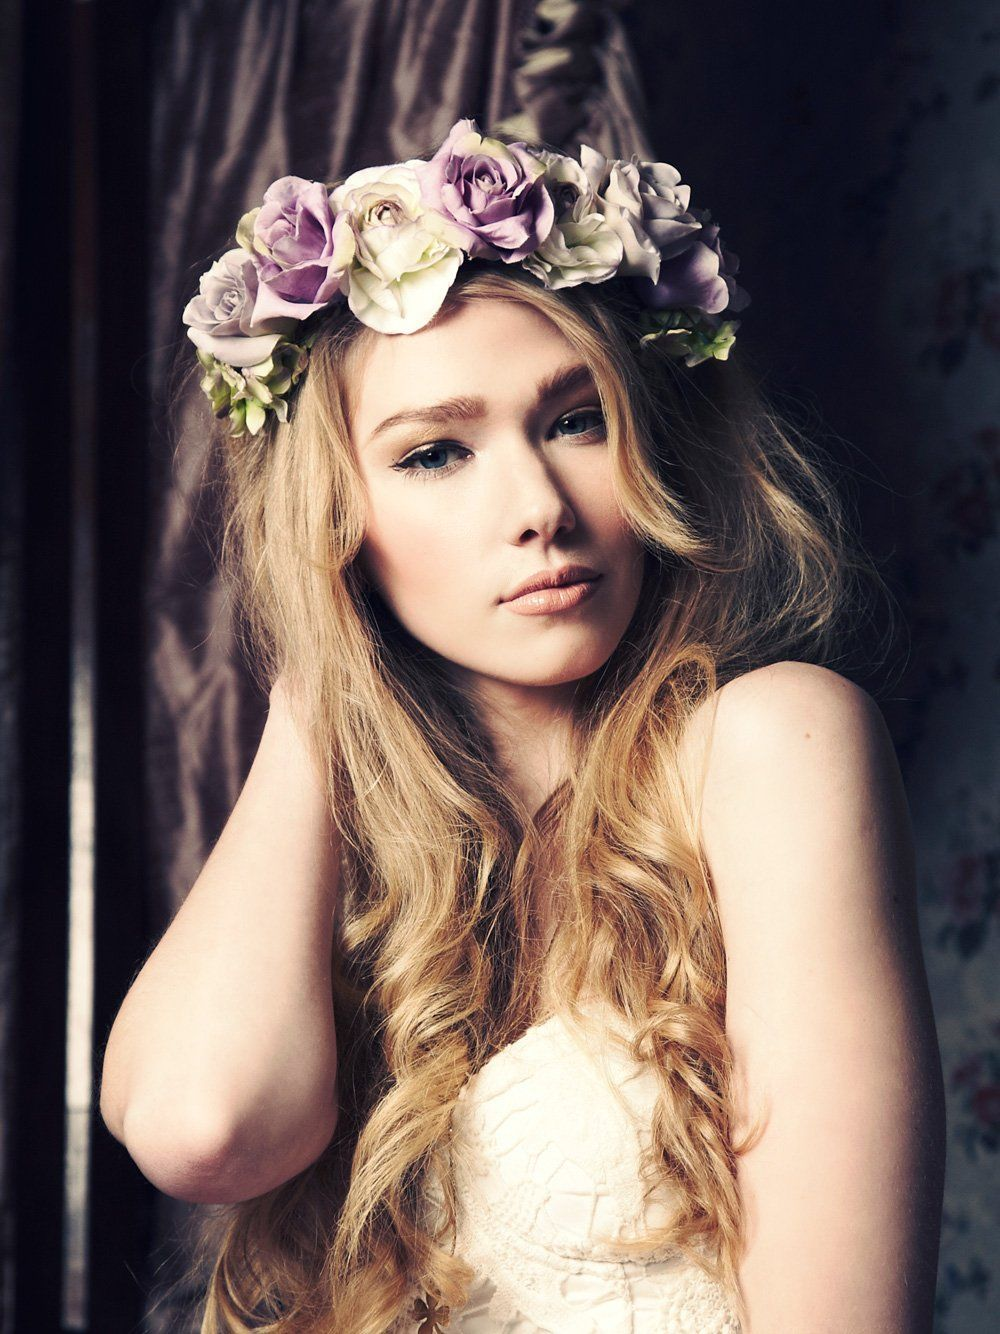 Lana oversized floral crown headband my style pinterest crown lana oversized floral crown headband izmirmasajfo Images